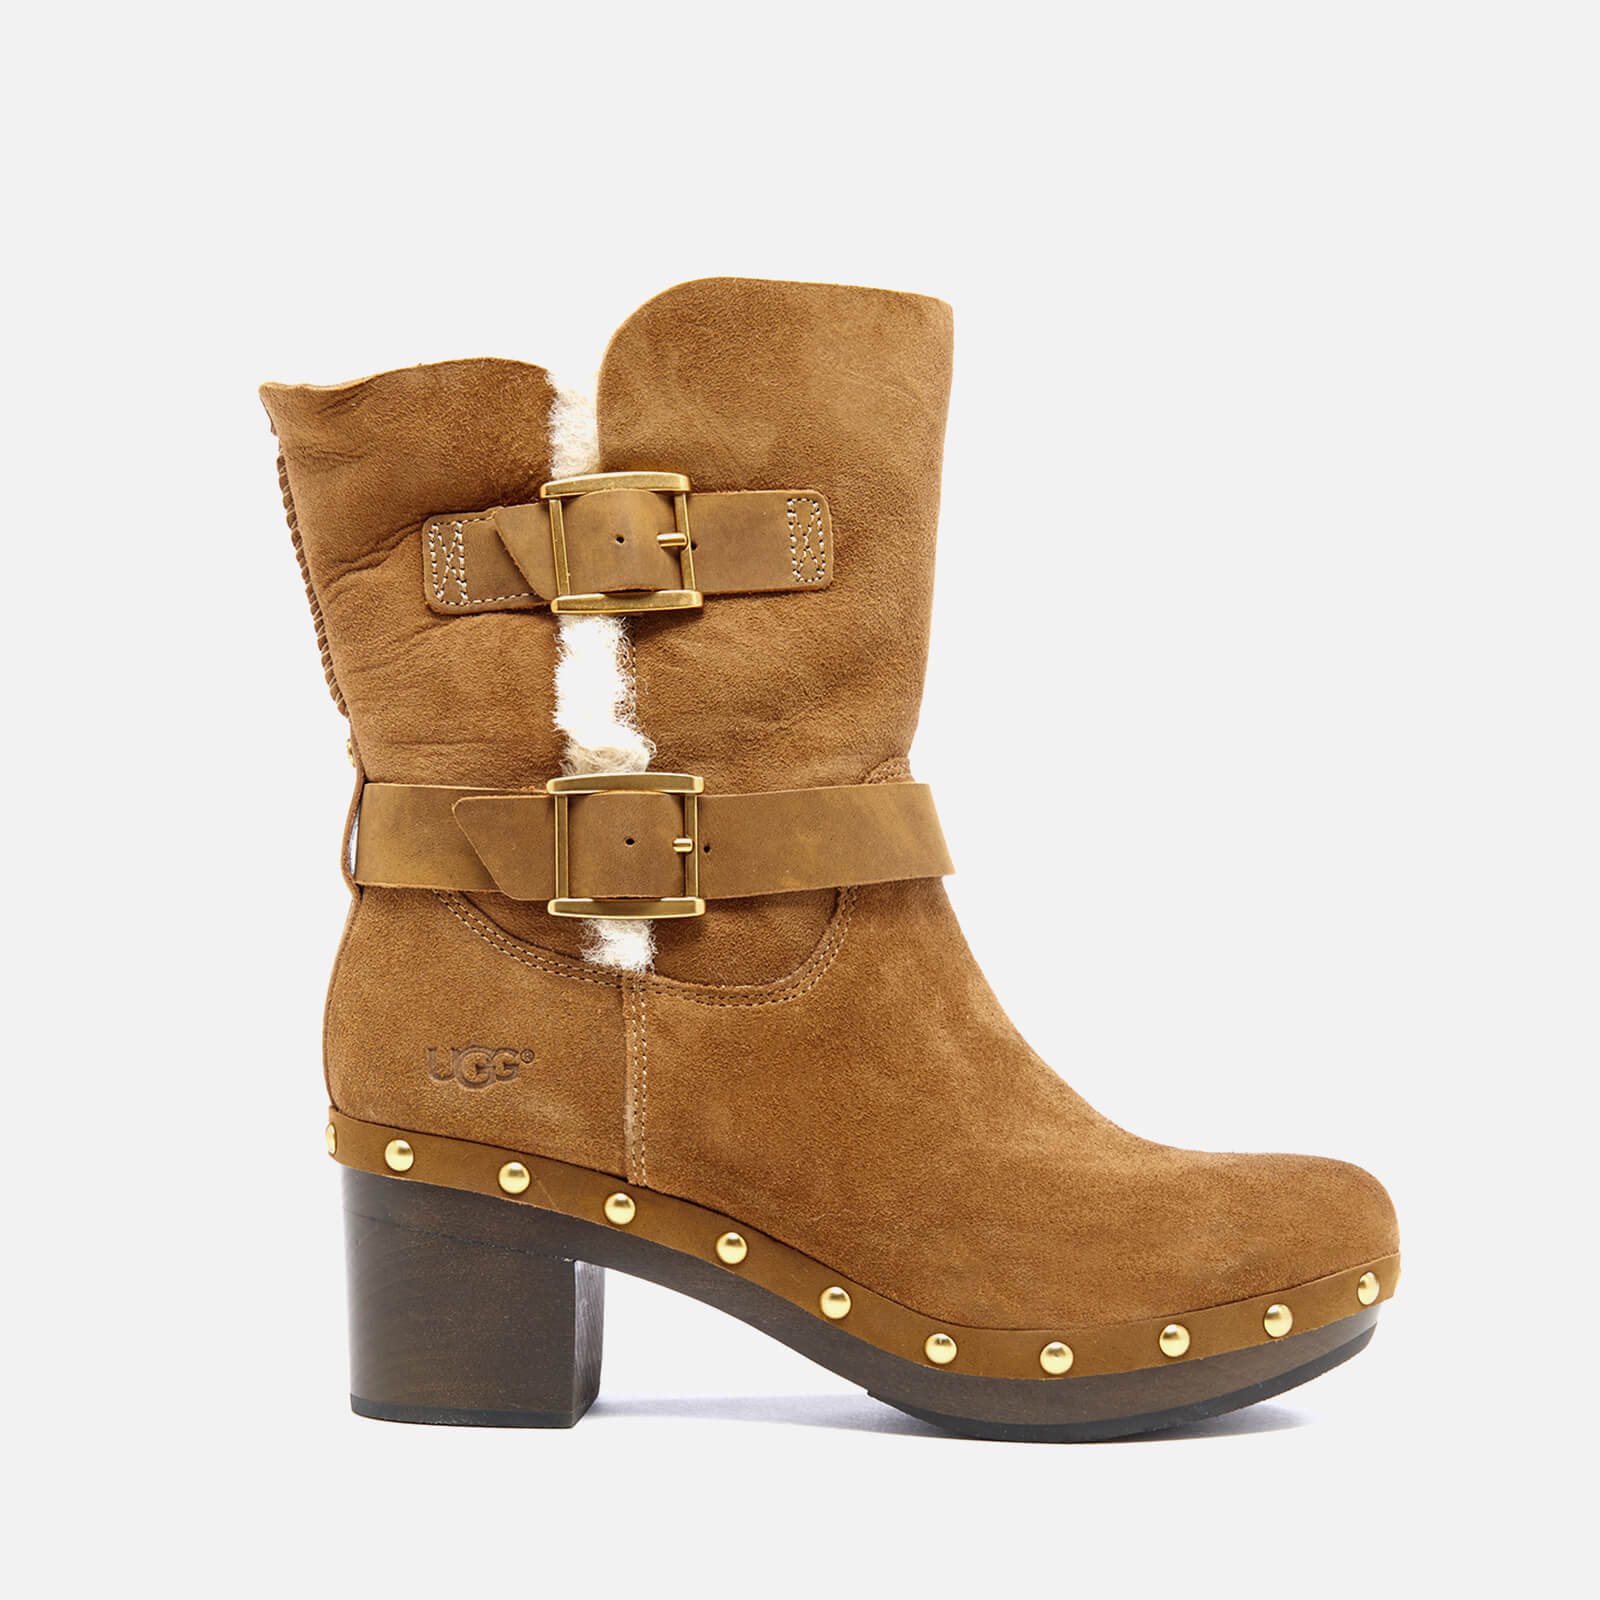 91b093ab2ee UGG Women's Brea Clog Suede Buckle Boots - Chestnut